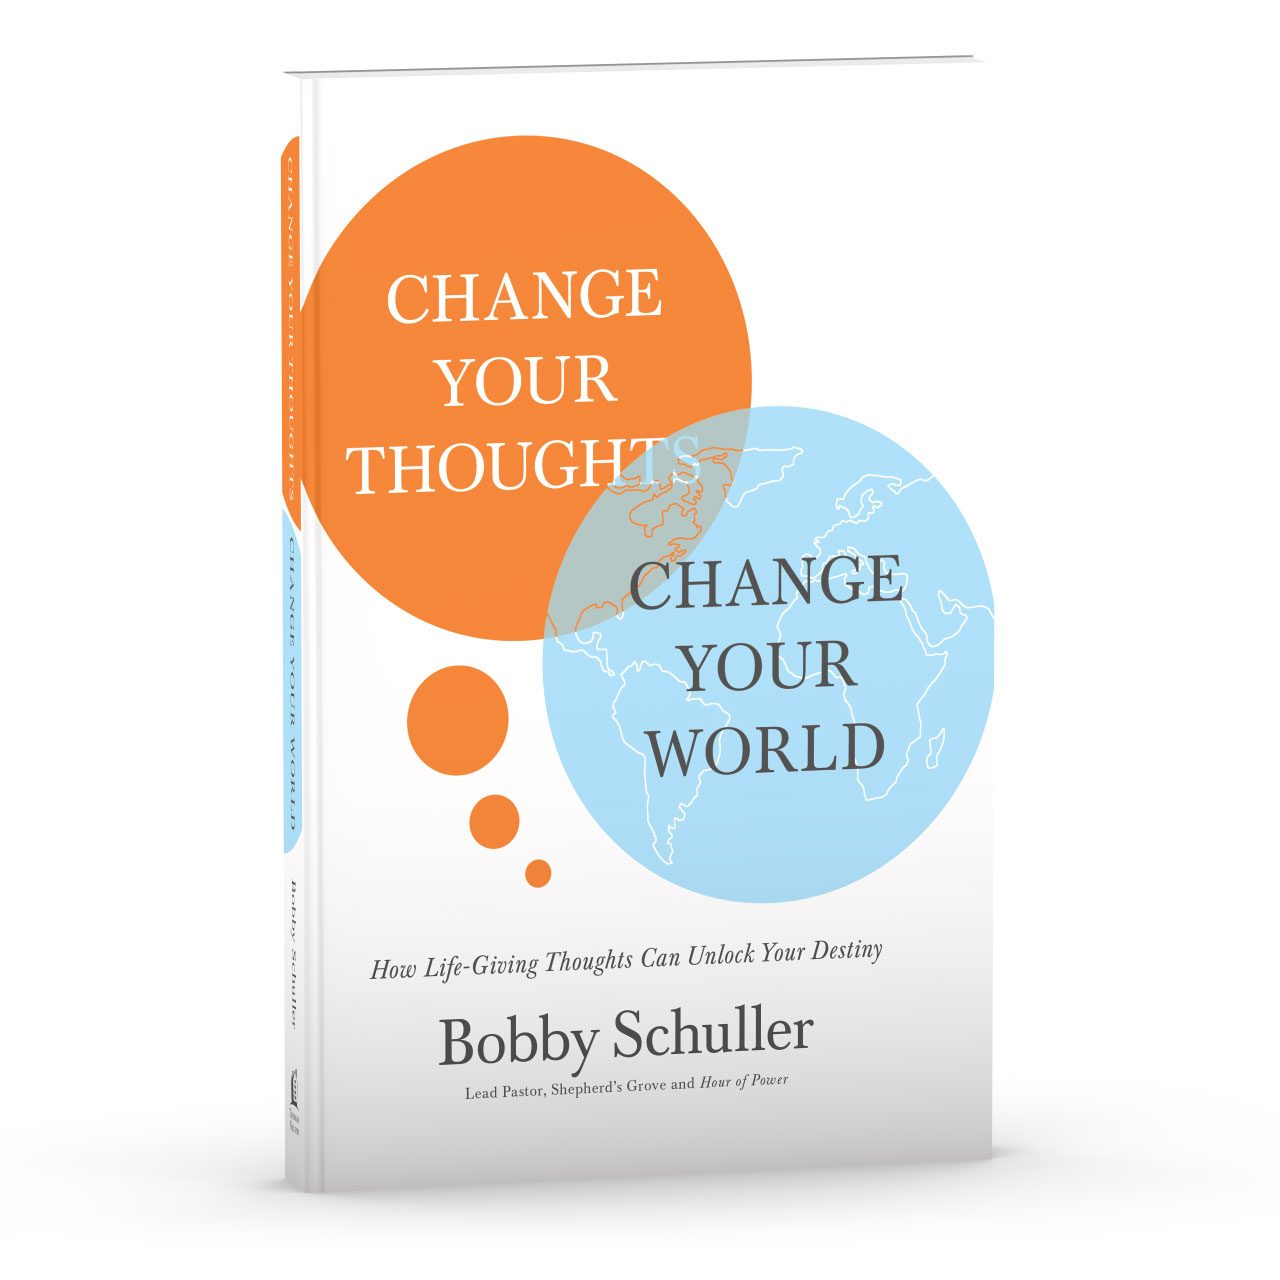 Book_ChangeYourThoughts